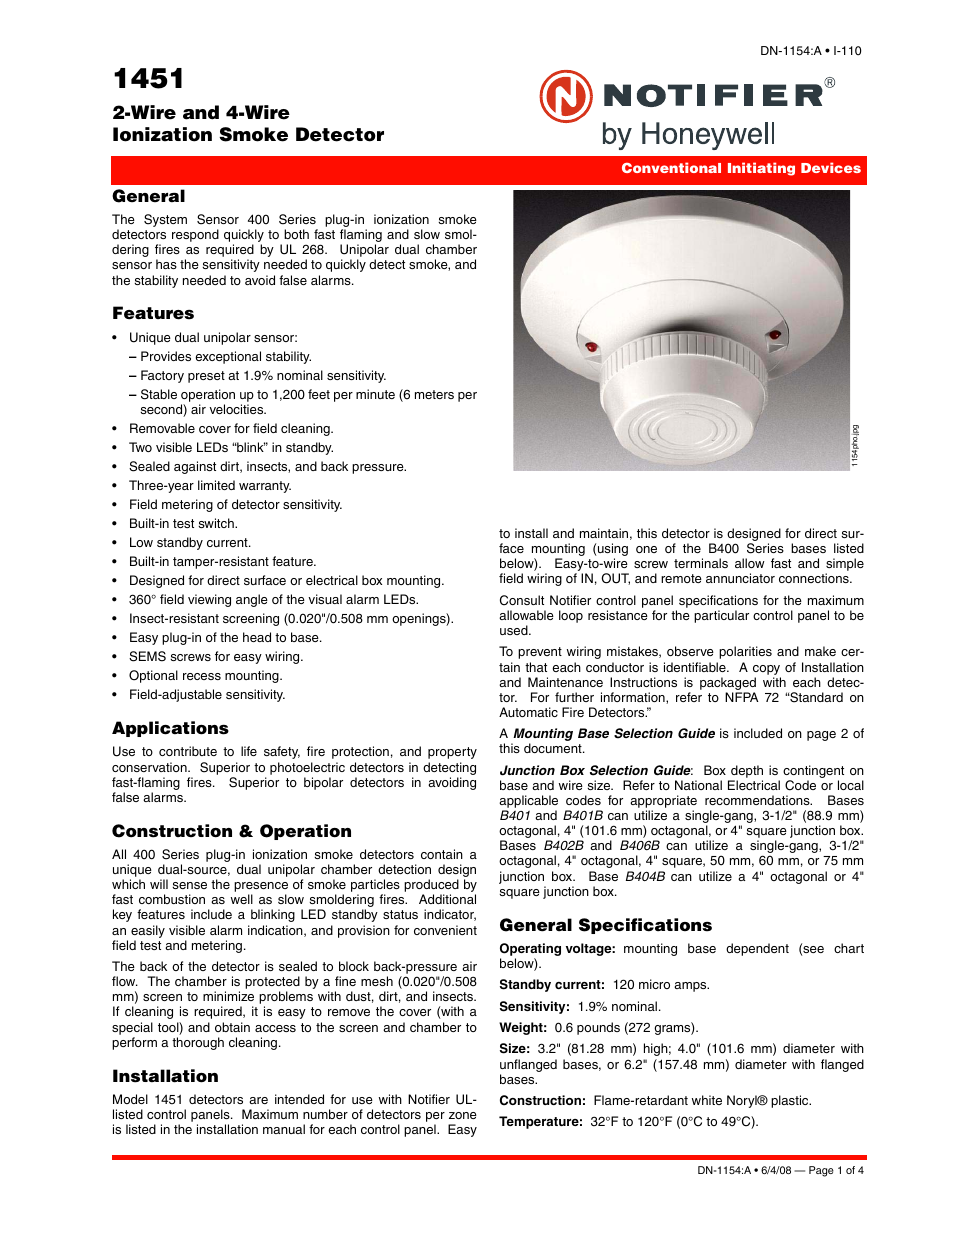 Wire Smoke Detector Wiring Diagram As Well As As Well As Free